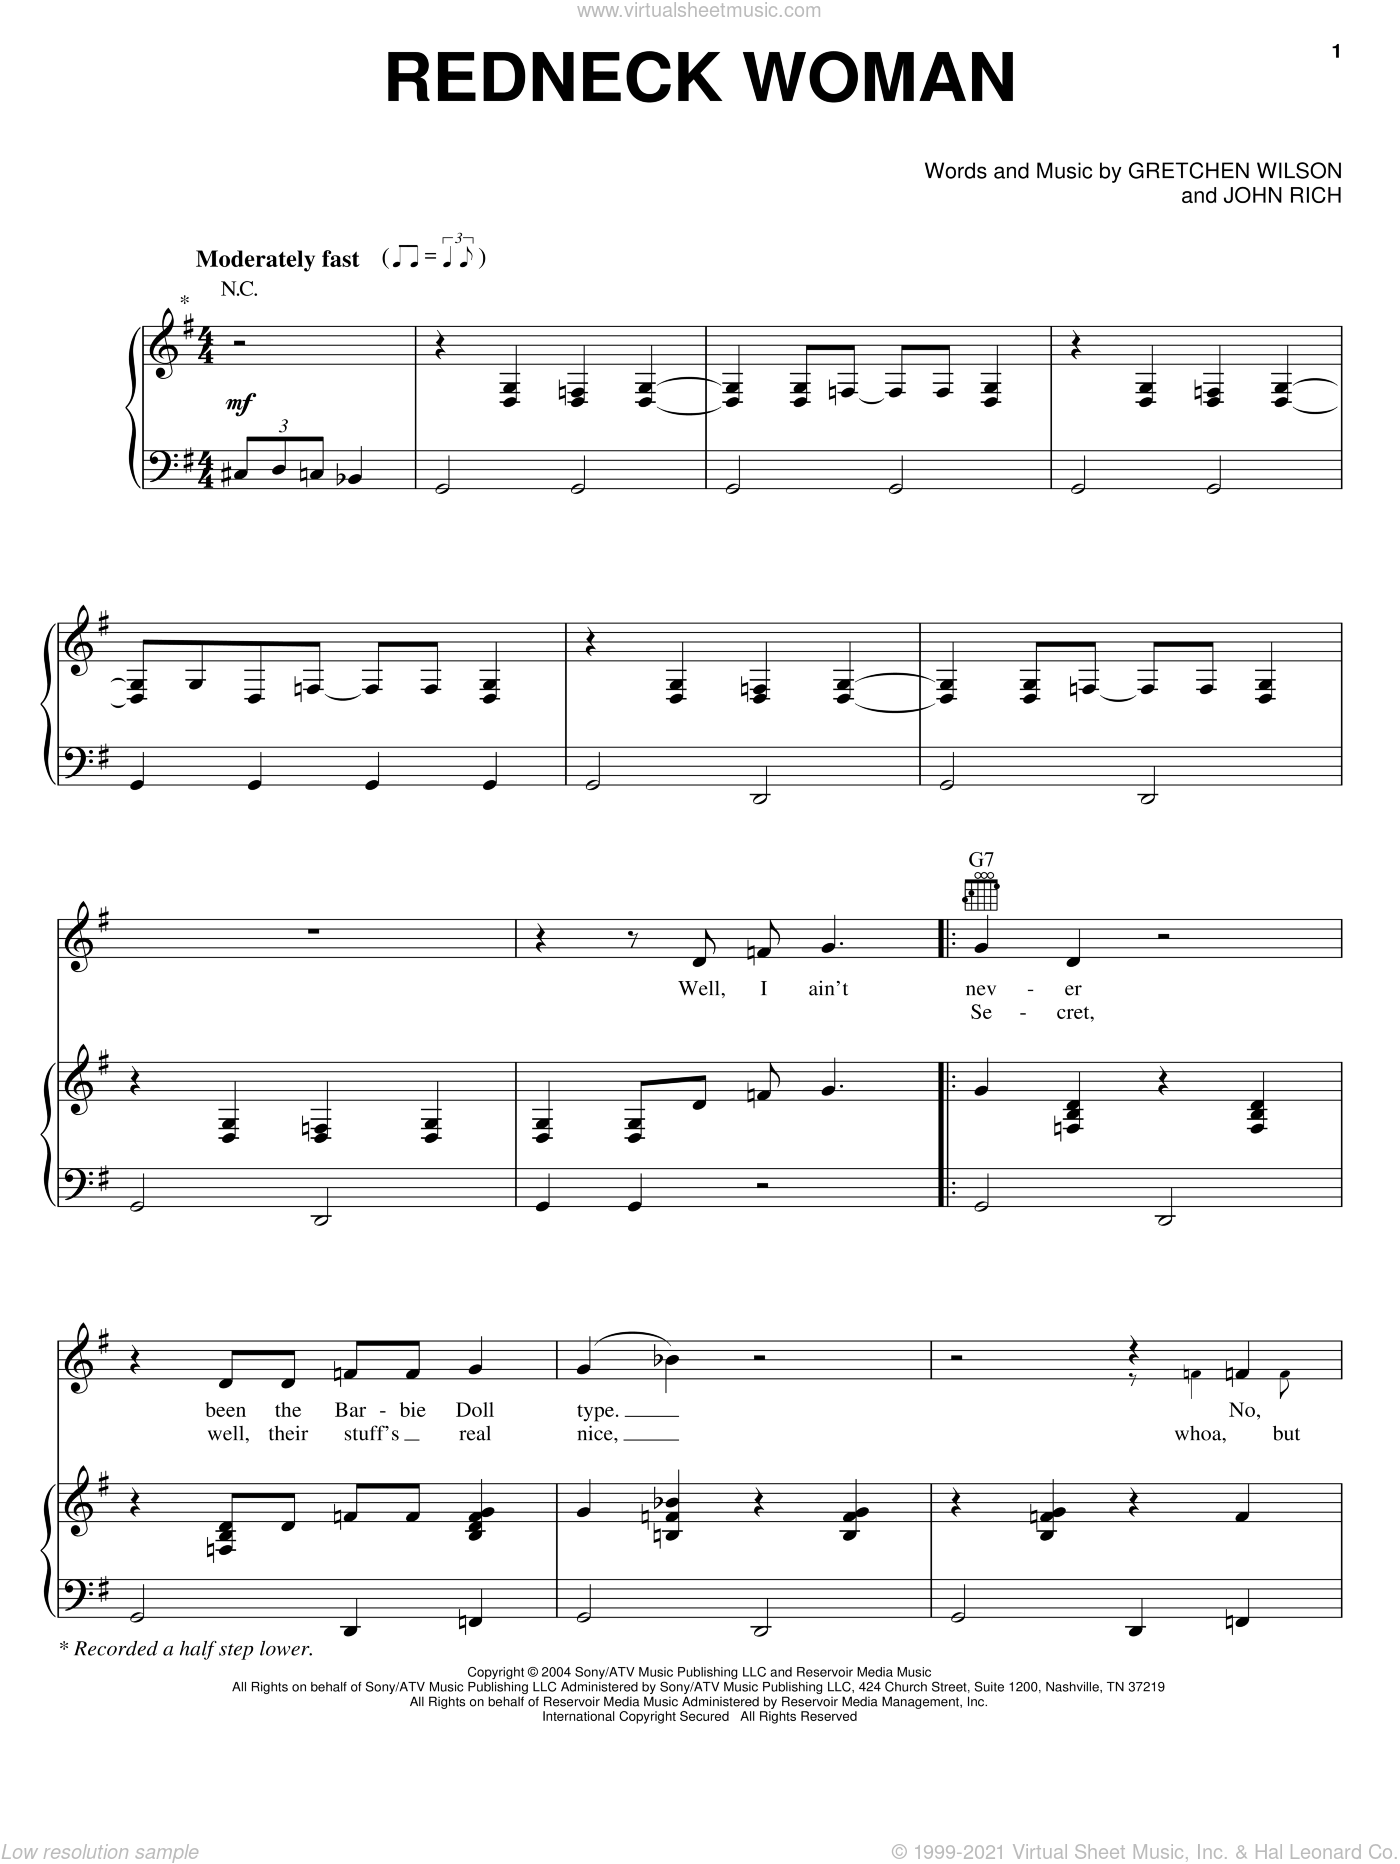 Redneck Woman sheet music for voice, piano or guitar by Gretchen Wilson and John Rich, intermediate